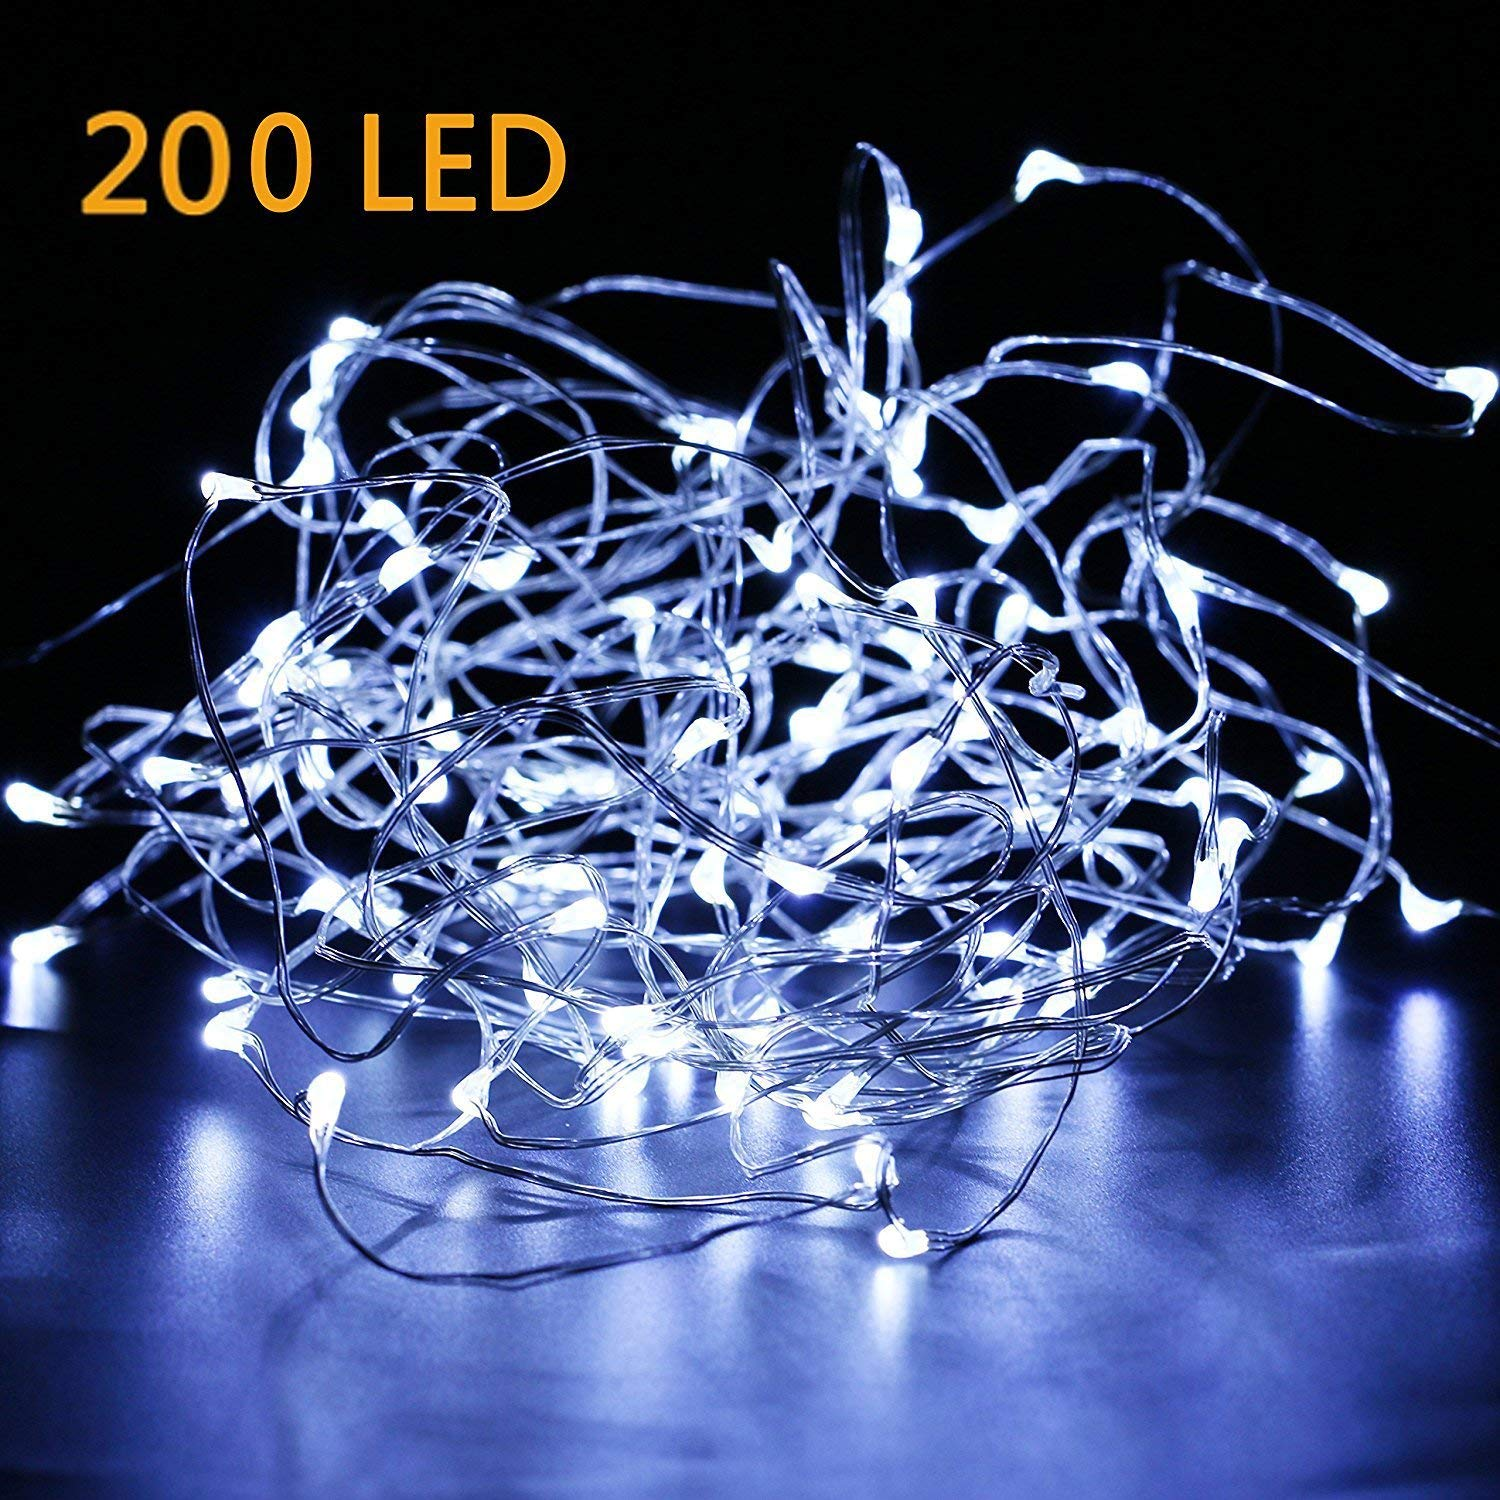 200 LED Fairy Lights Plug in 70FT Starry String Lights Waterproof Silver Coated Copper Wire Lights - UL Adaptor Included, for Indoor Outdoor Christmas Bedroom Patio Wedding Garden Pure White